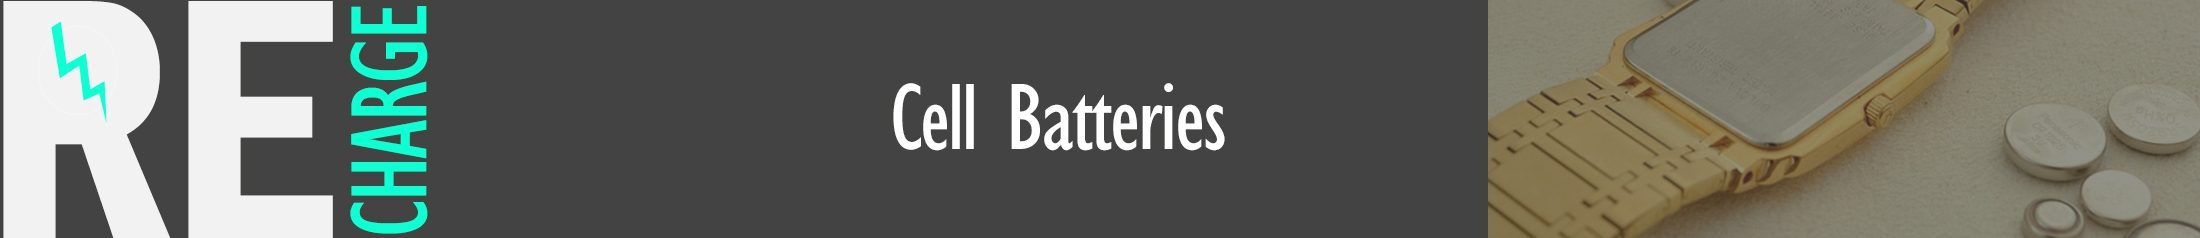 Cell batteries